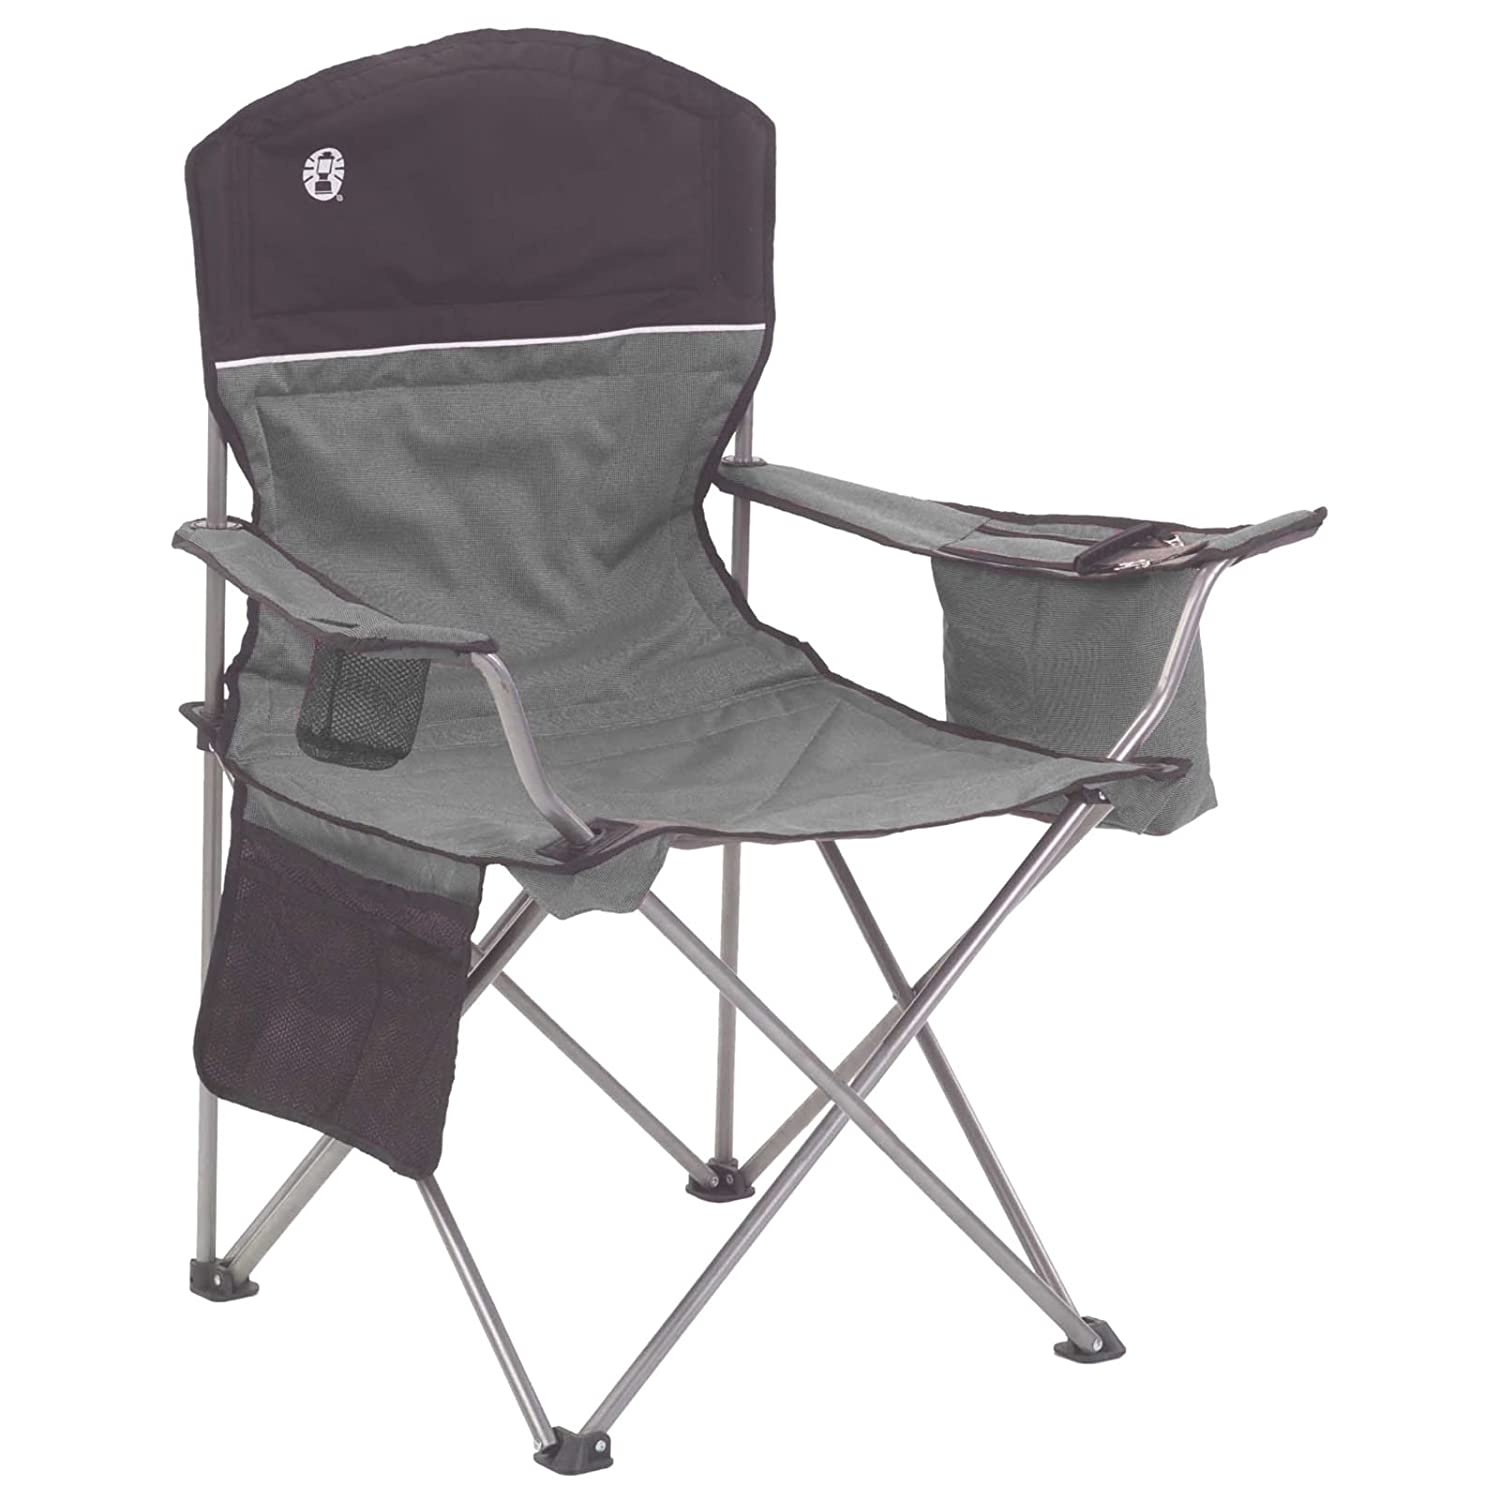 colin collins products spectra velvet gray home chair frnt